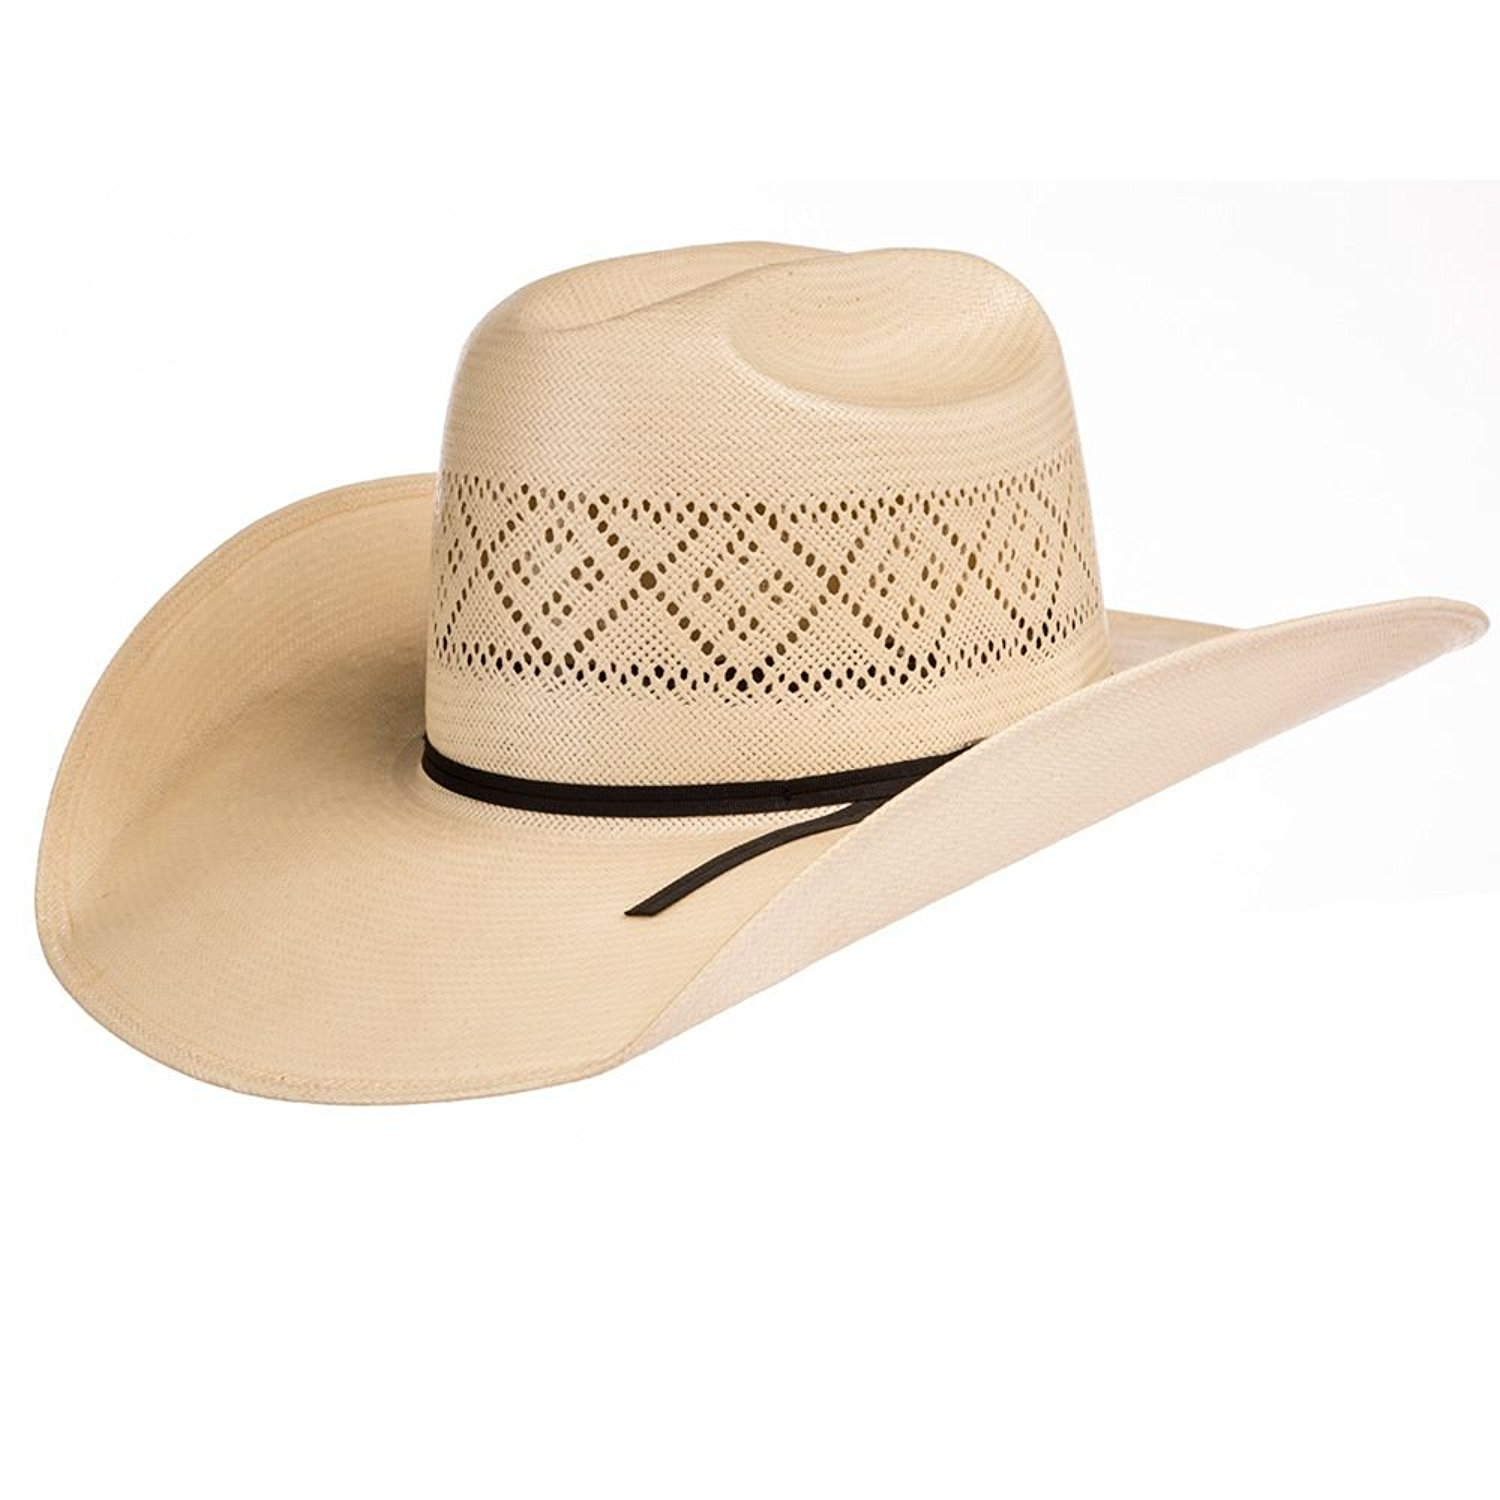 71d976dfcd26c2 Get Quotations · NRS American Hat Company Mens Tuf Cooper 20 Star Ivory  Open Crown Solid Weave 4 1